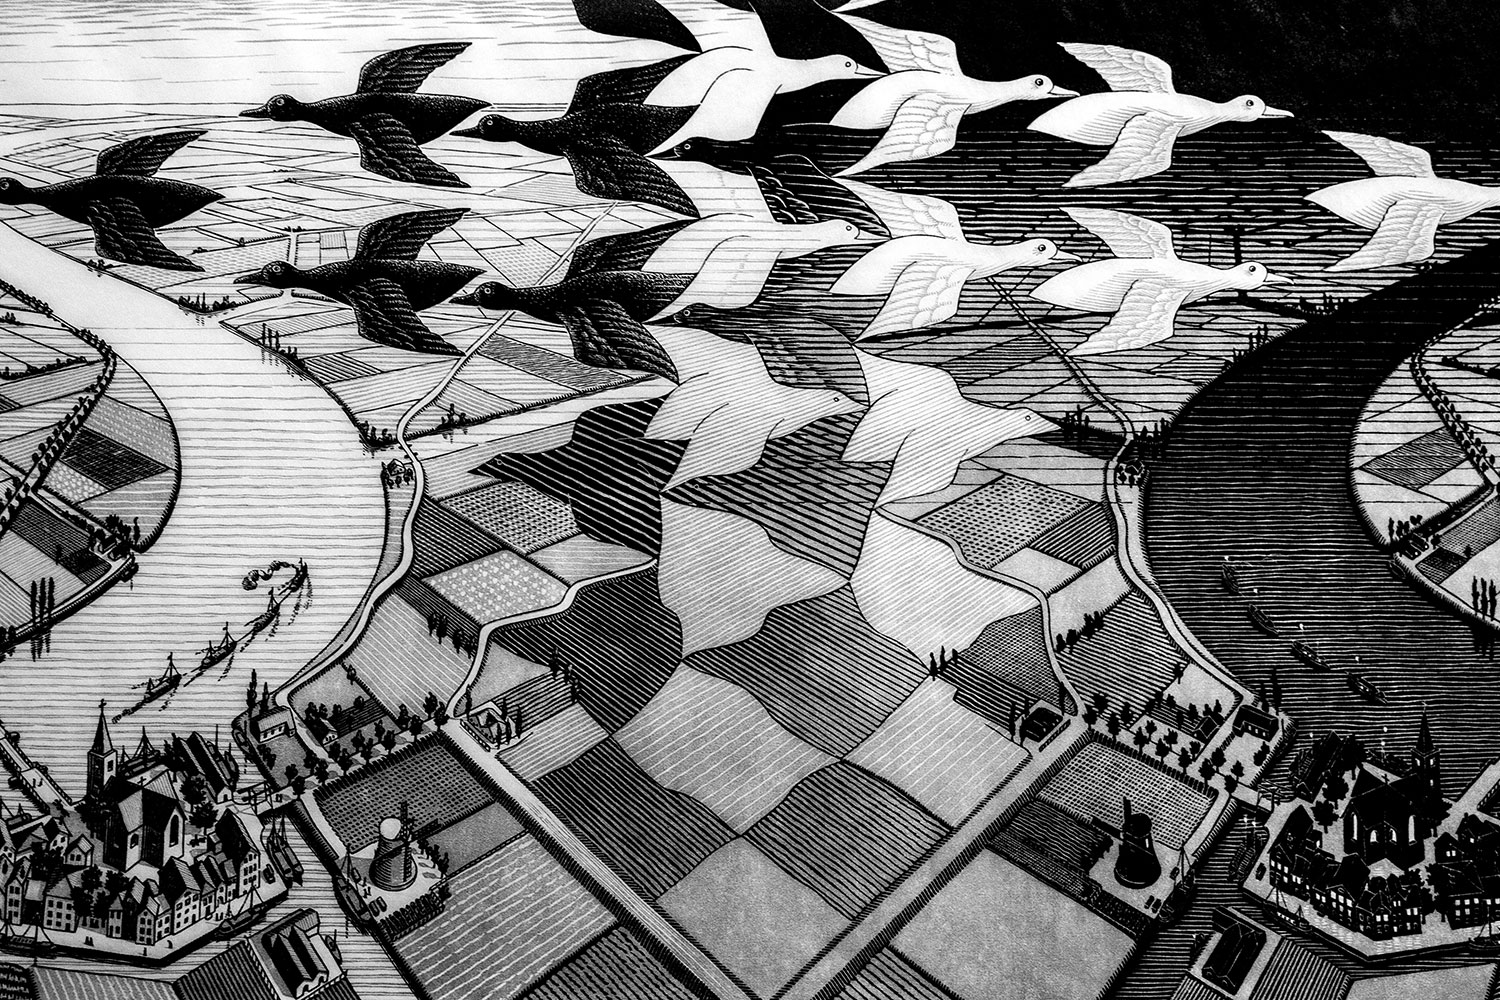 M. C. Escher / for the love of Nike